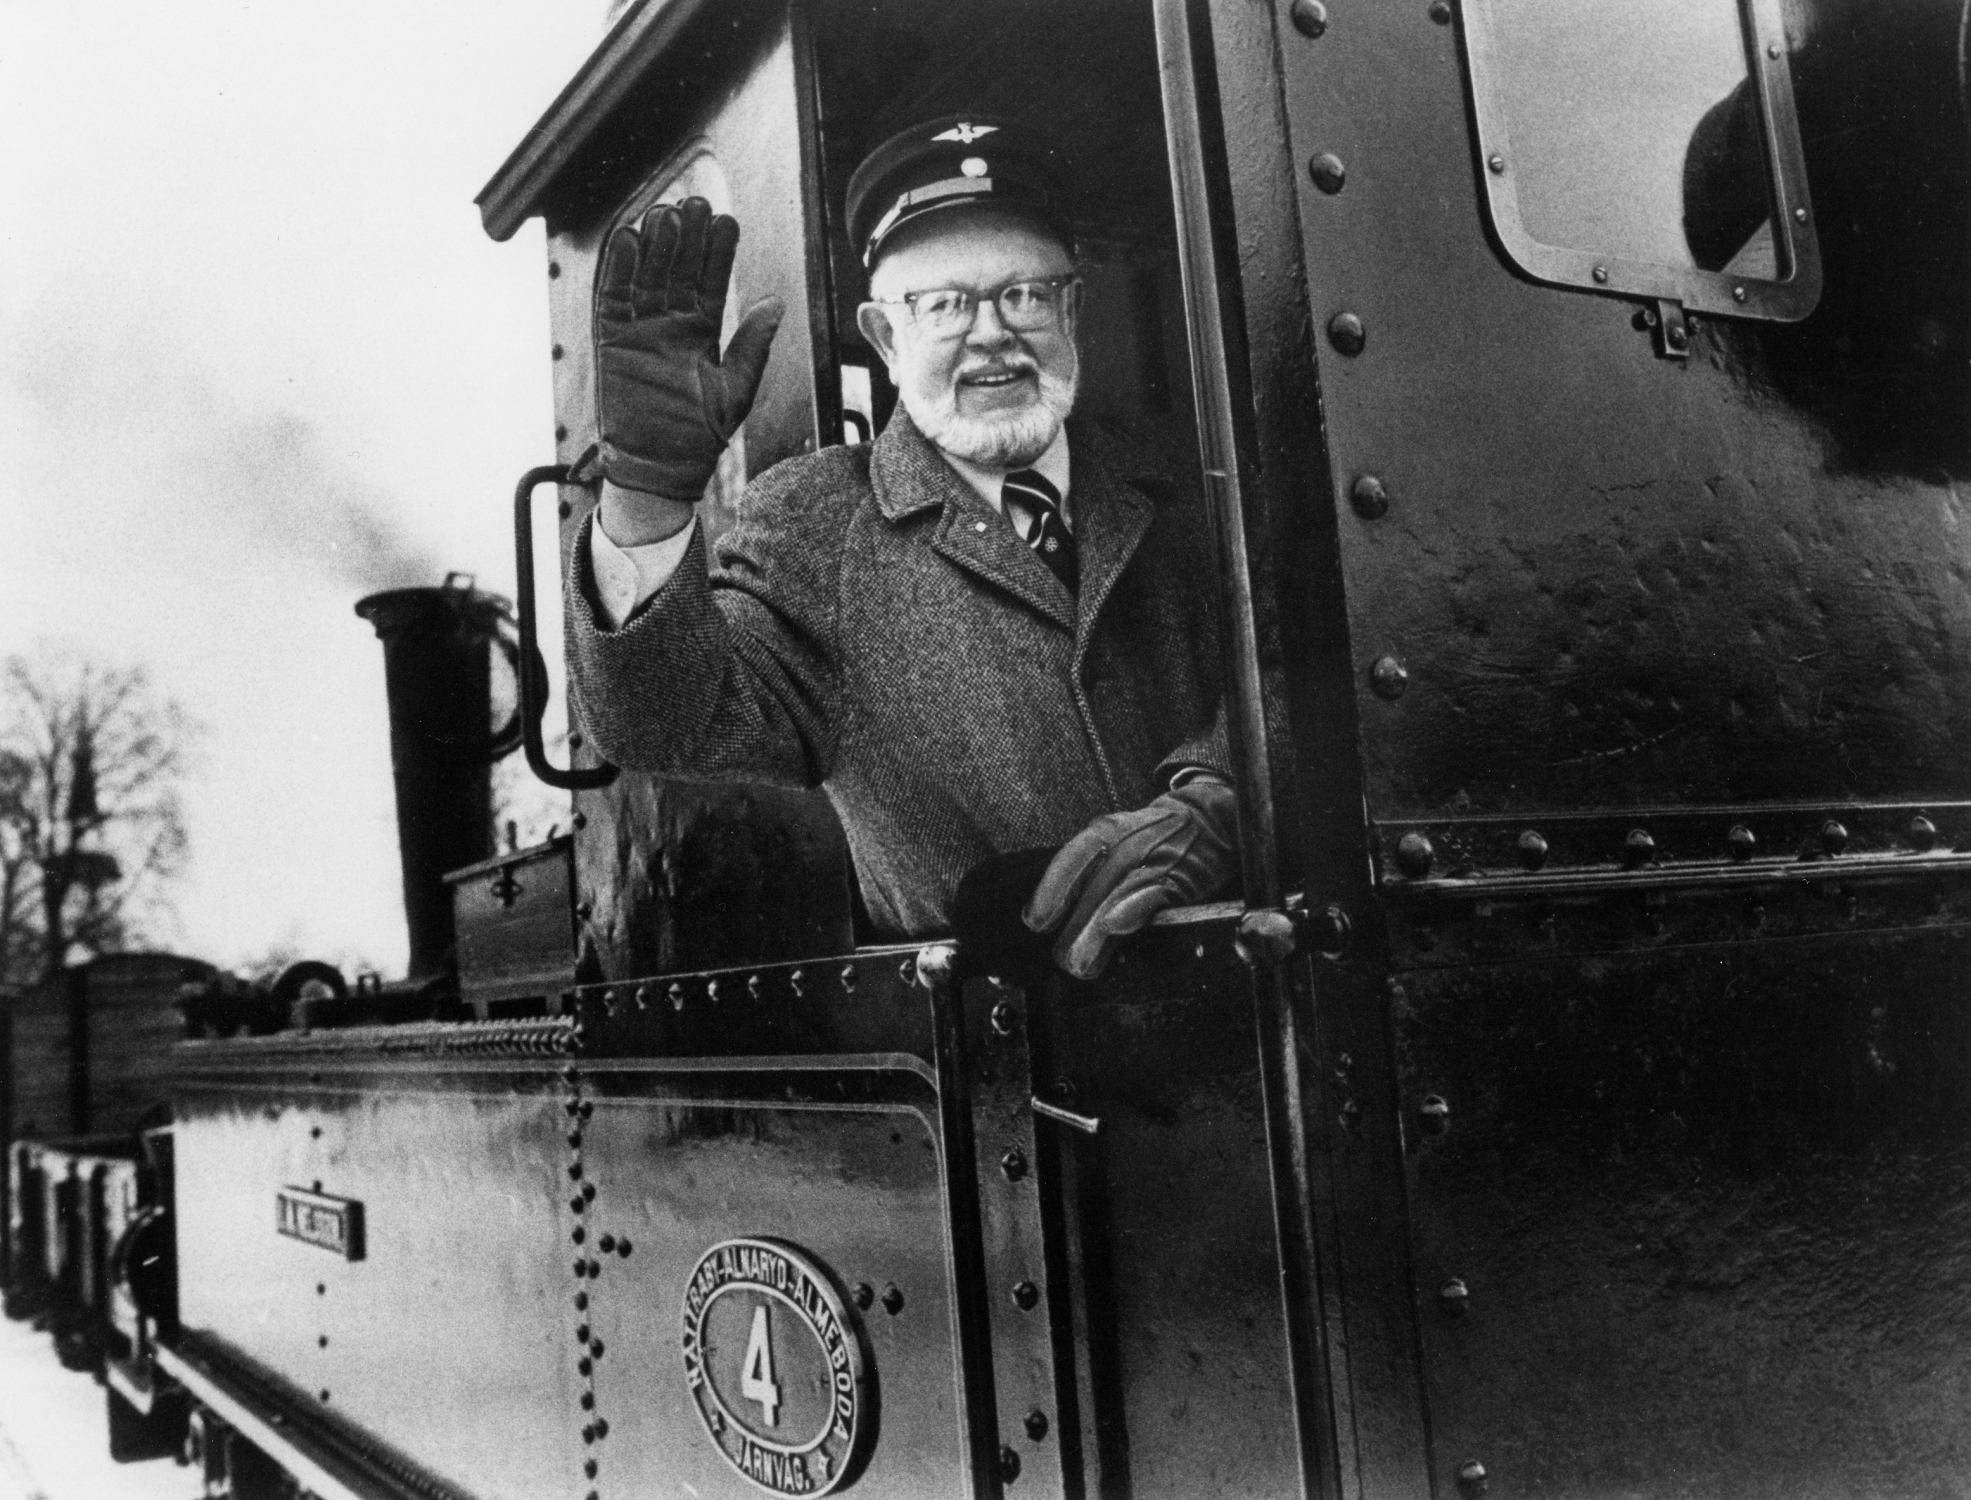 William A. Fowler waves from a train, 1983.